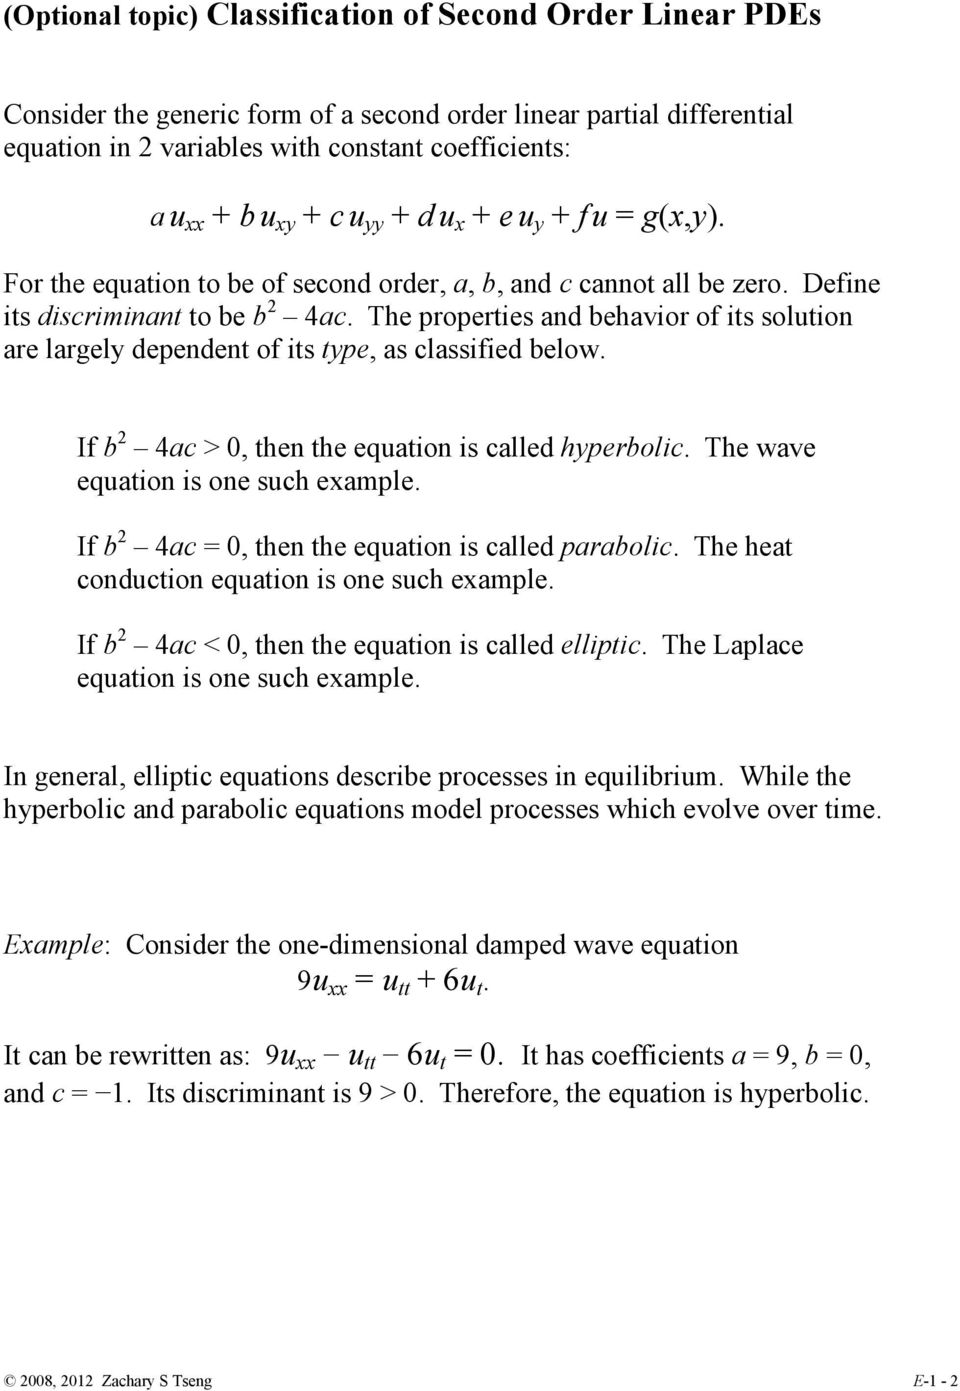 Second Order Linear Partial Differential Equations  Part I - PDF